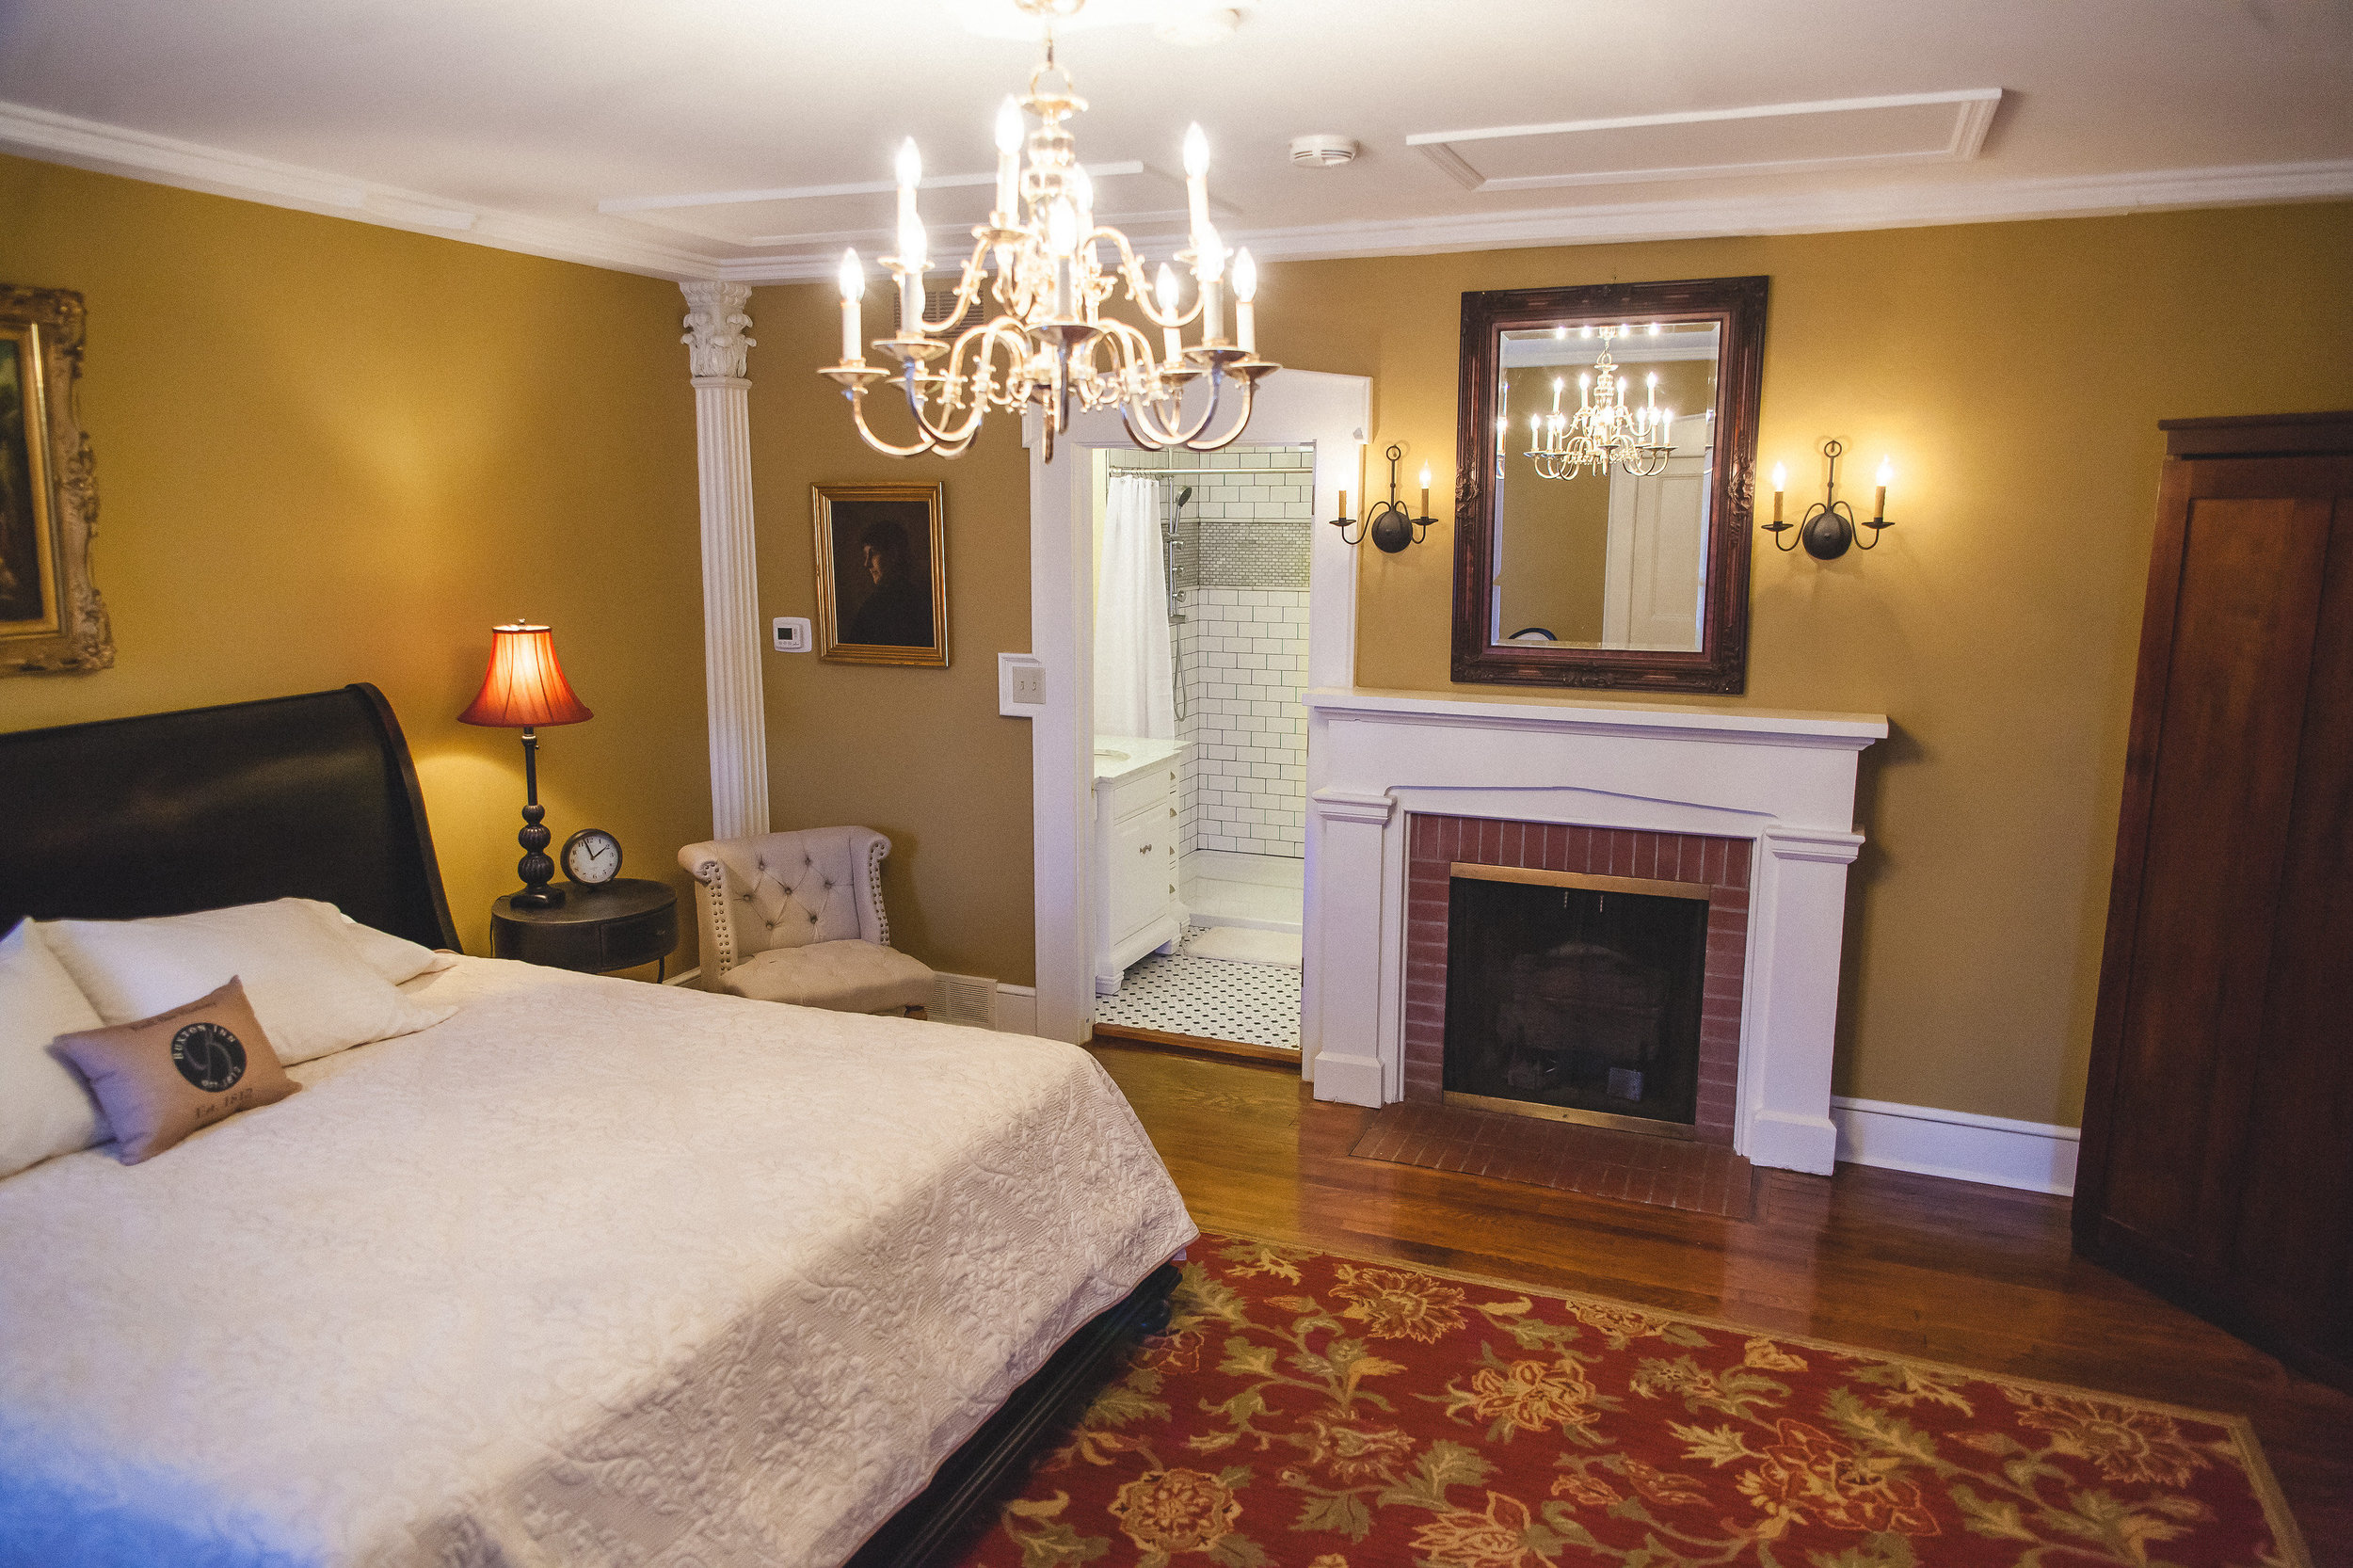 COME STAY WITH US - Our unconventional layout makes us unique. The Main House and four other historical homes make up the 26 guest rooms at the Inn. All with amenities that you would expect at an upscale inn allowing our guests to immerse themselves in the history at the Buxton Inn.